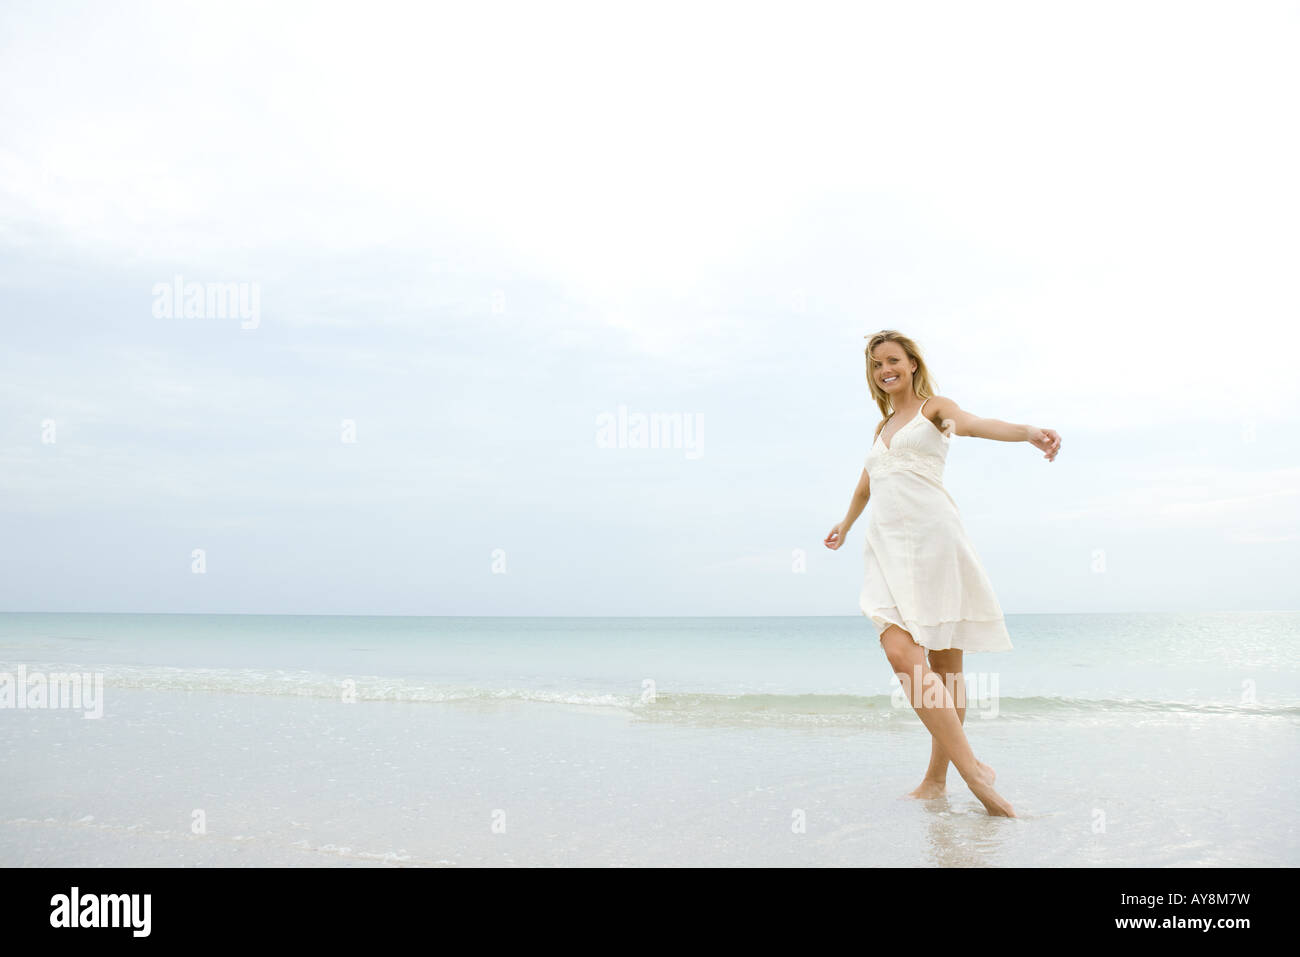 Young woman in sundress posing on beach with arms out and legs crossed, smiling at camera - Stock Image